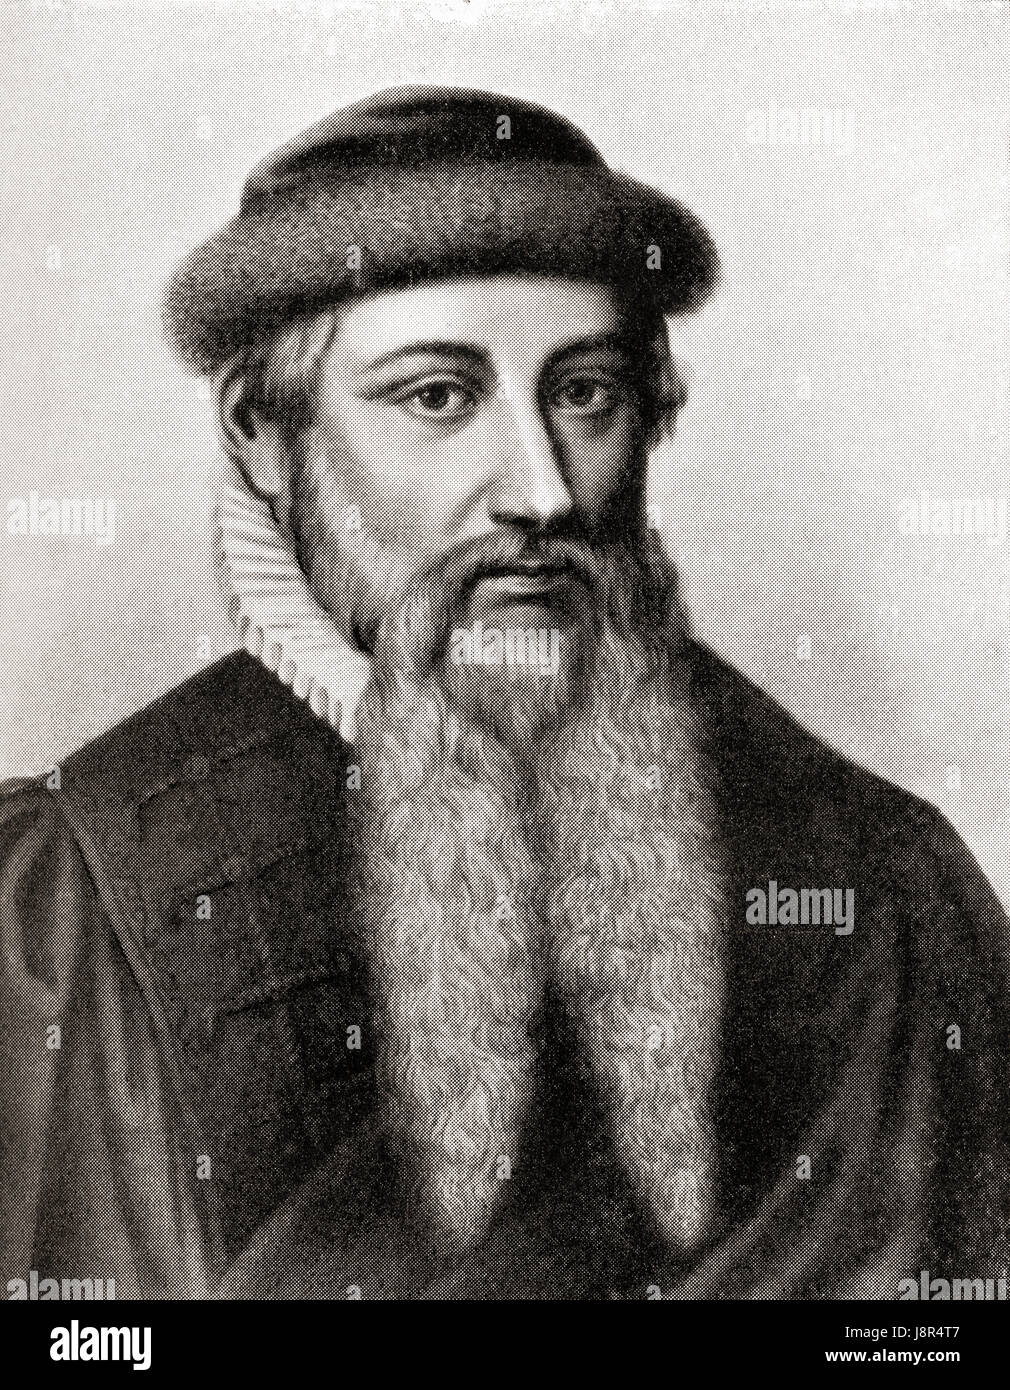 Johannes Gutenberg Printing Press High Resolution Stock Photography And Images Alamy